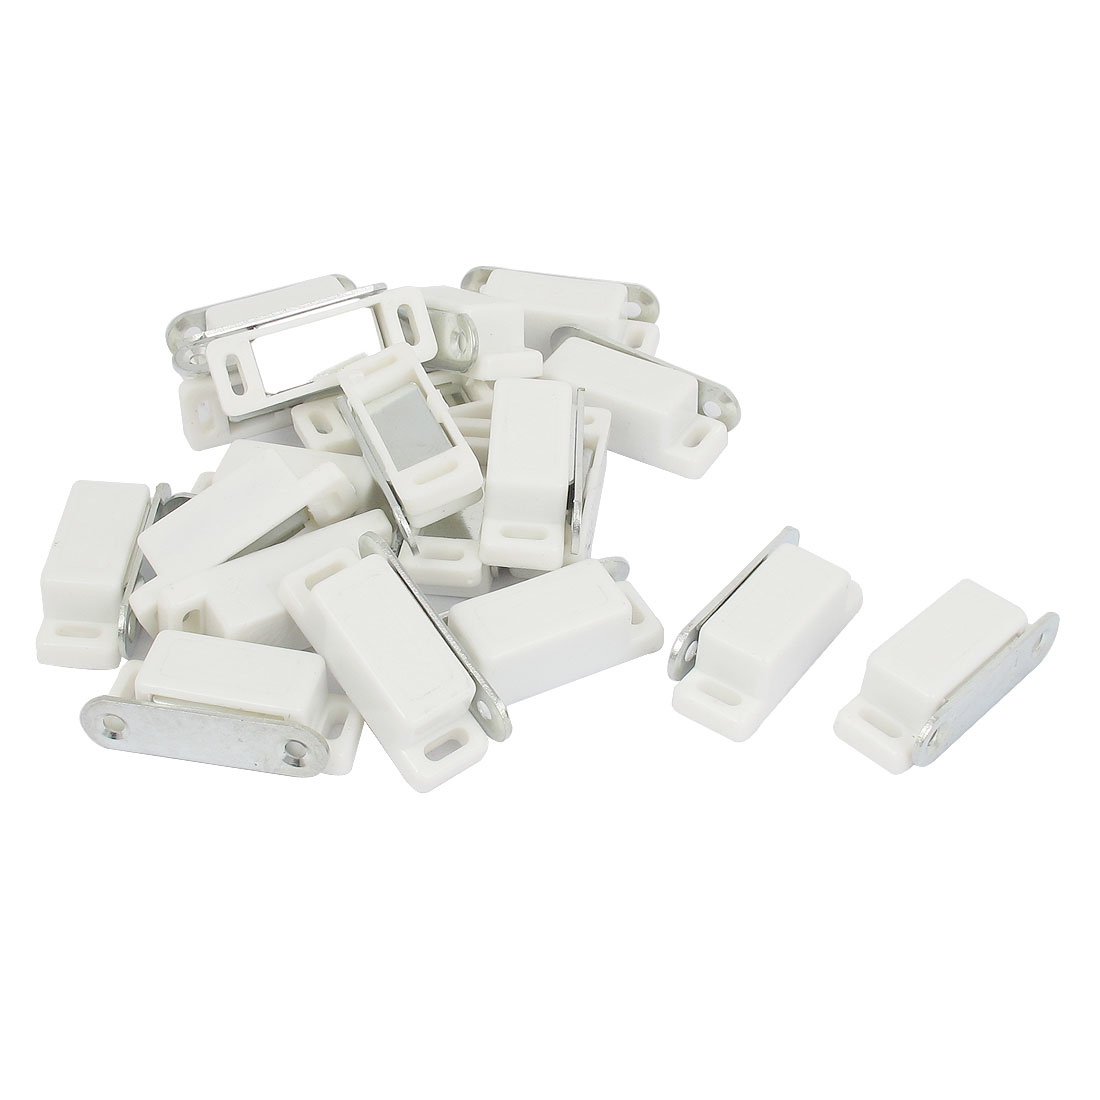 Cabinet Cupboard Door Plastic Magnetic Latch Catch White 44mm Long 20 Pcs